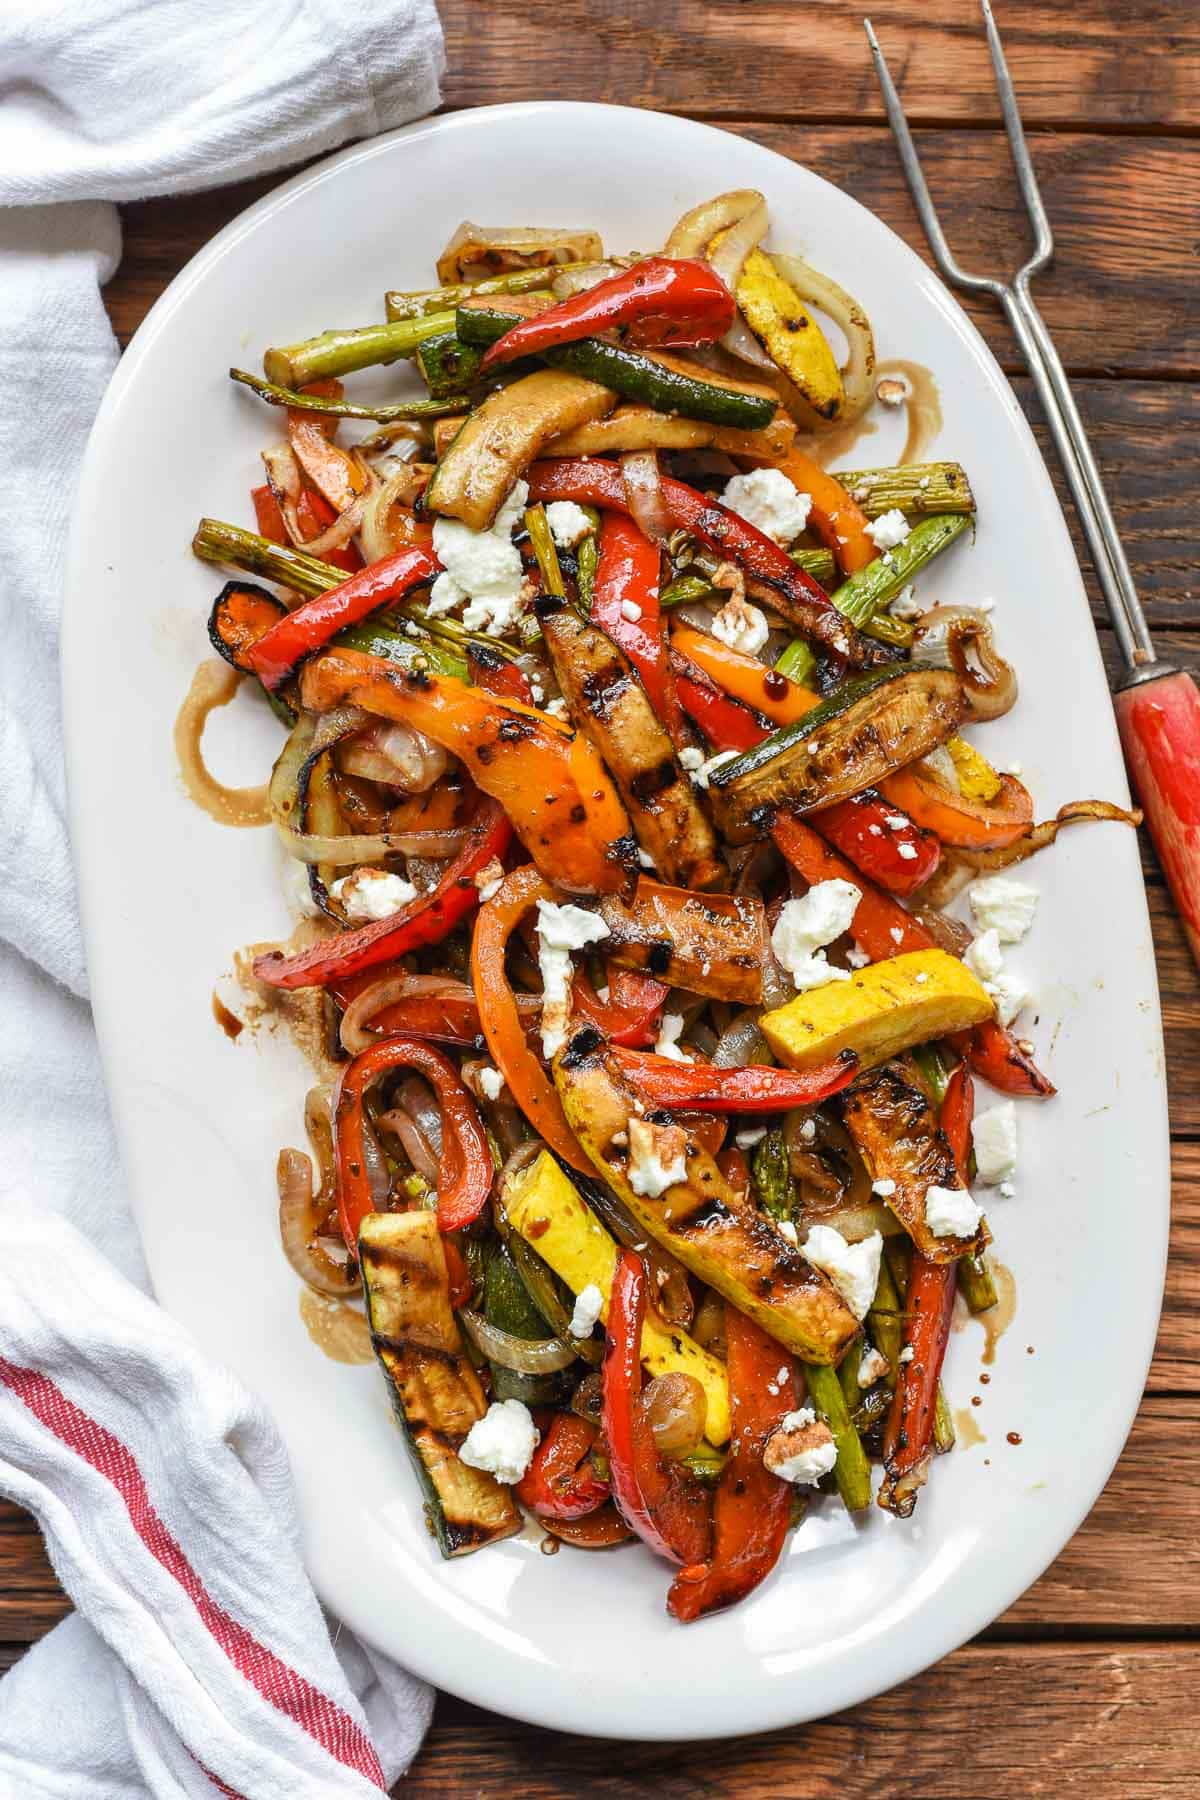 Easy Balsamic Grilled Vegetables are loaded with the best summer produce in a sweet, tangy marinade.